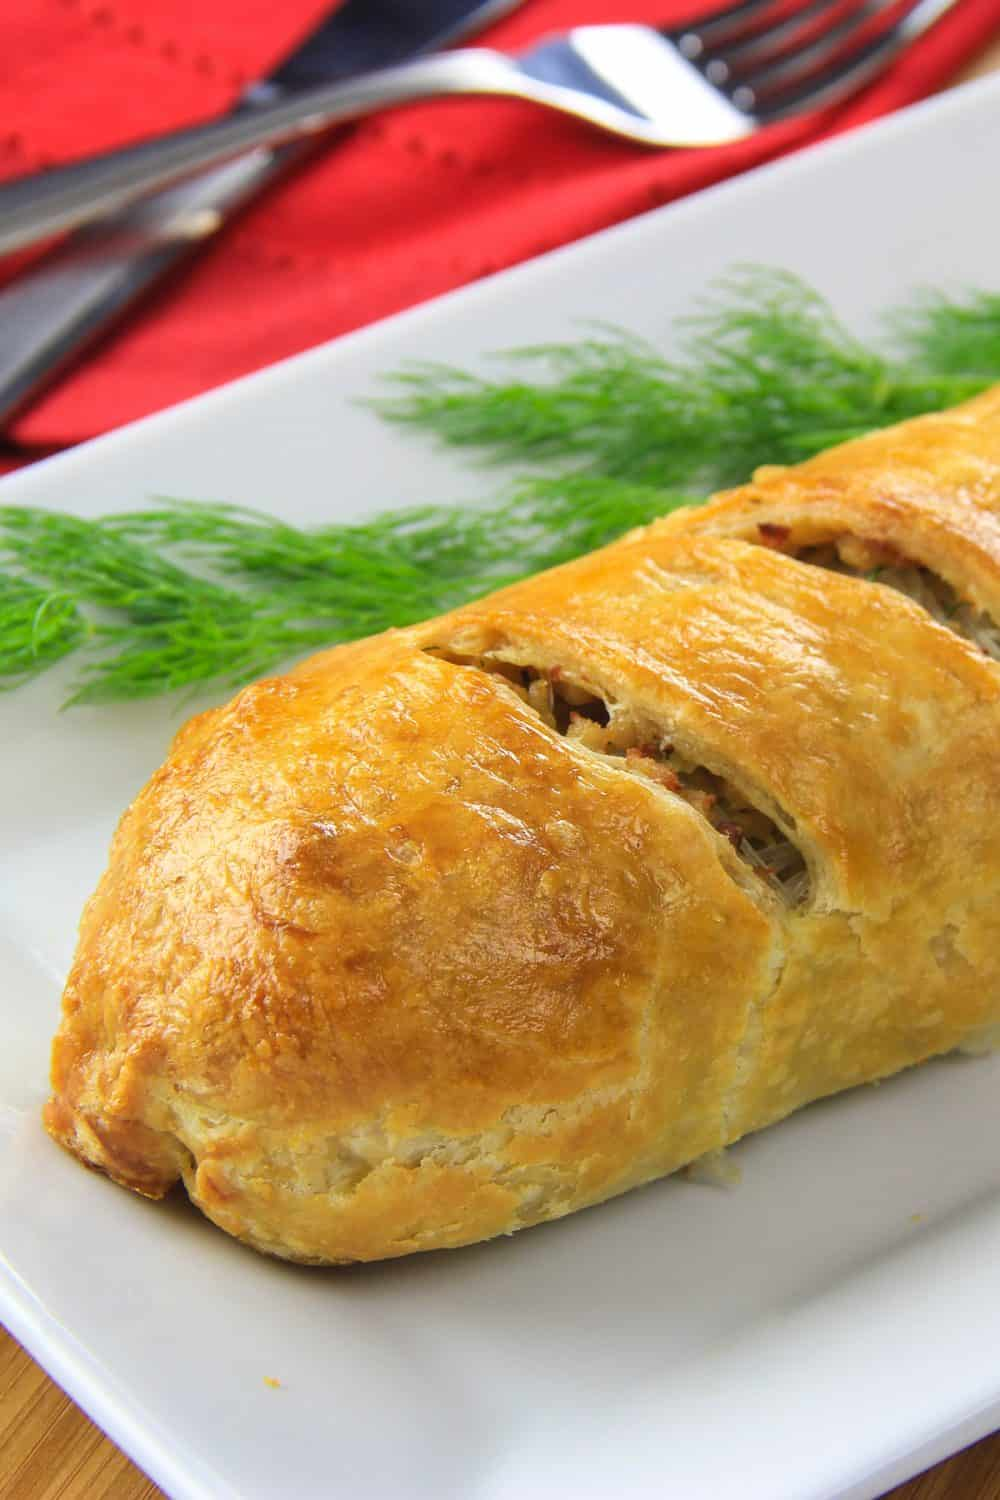 Prepared chicken puff pastry served on a white plate with fresh dill and a red napkin with fork and knife